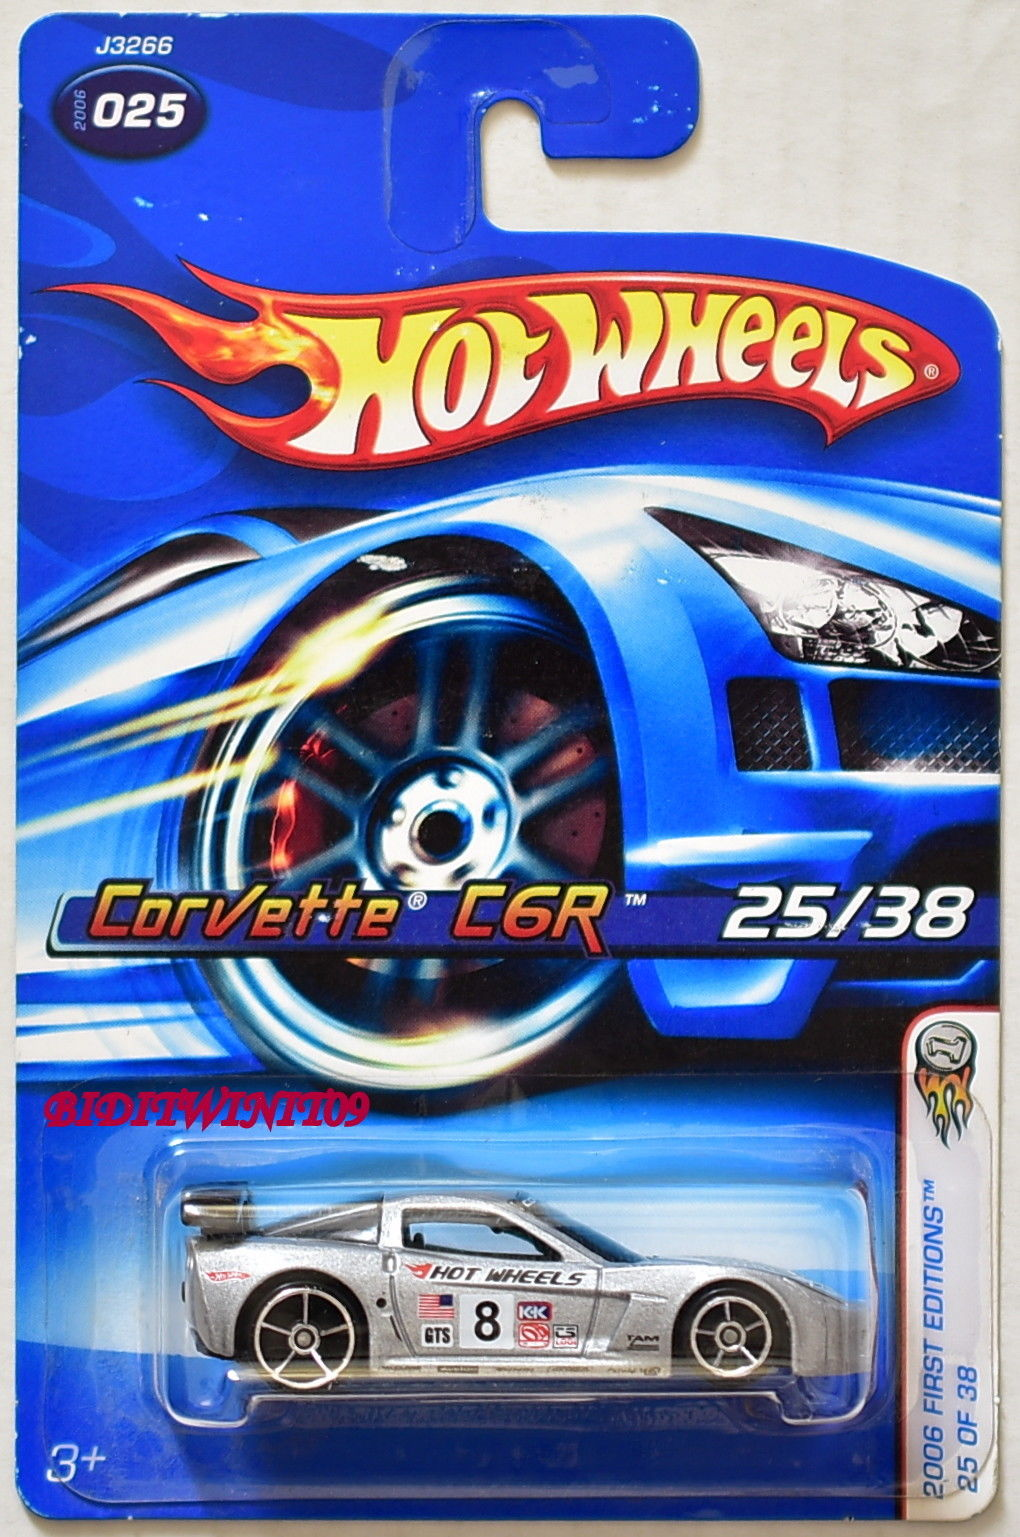 HOT WHEELS 2006 FIRST EDITIONS CORVETTE C6R #025 SILVER